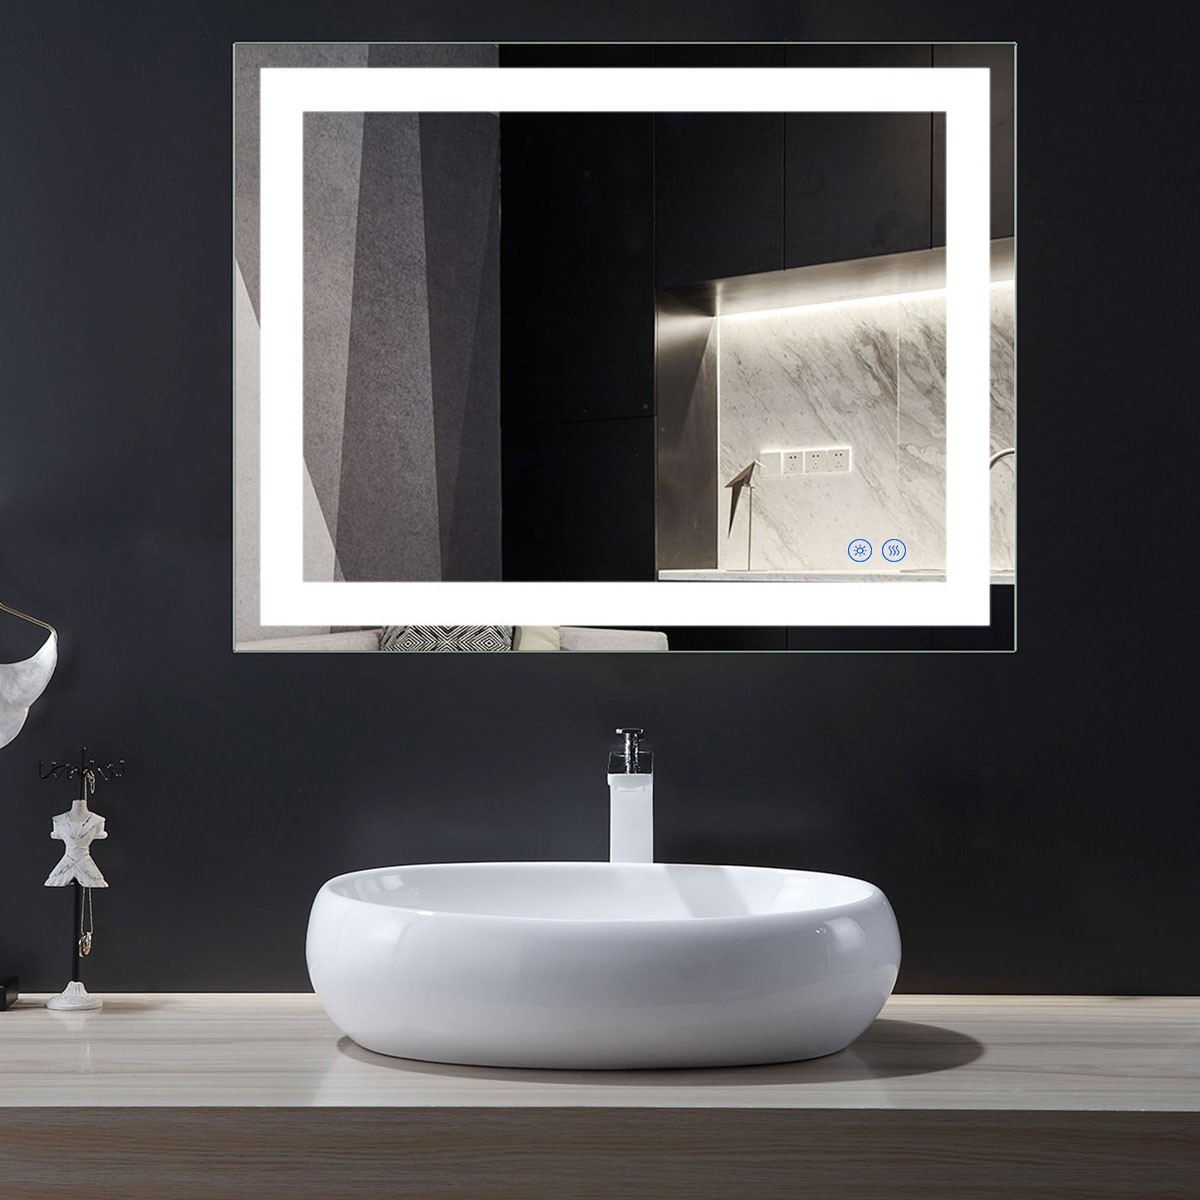 Decoraport 36 x 28 In LED Bathroom Mirror with Touch Button, Anti-Fog, Dimmable, Vertical & Horizontal Mount (CT13-3628)